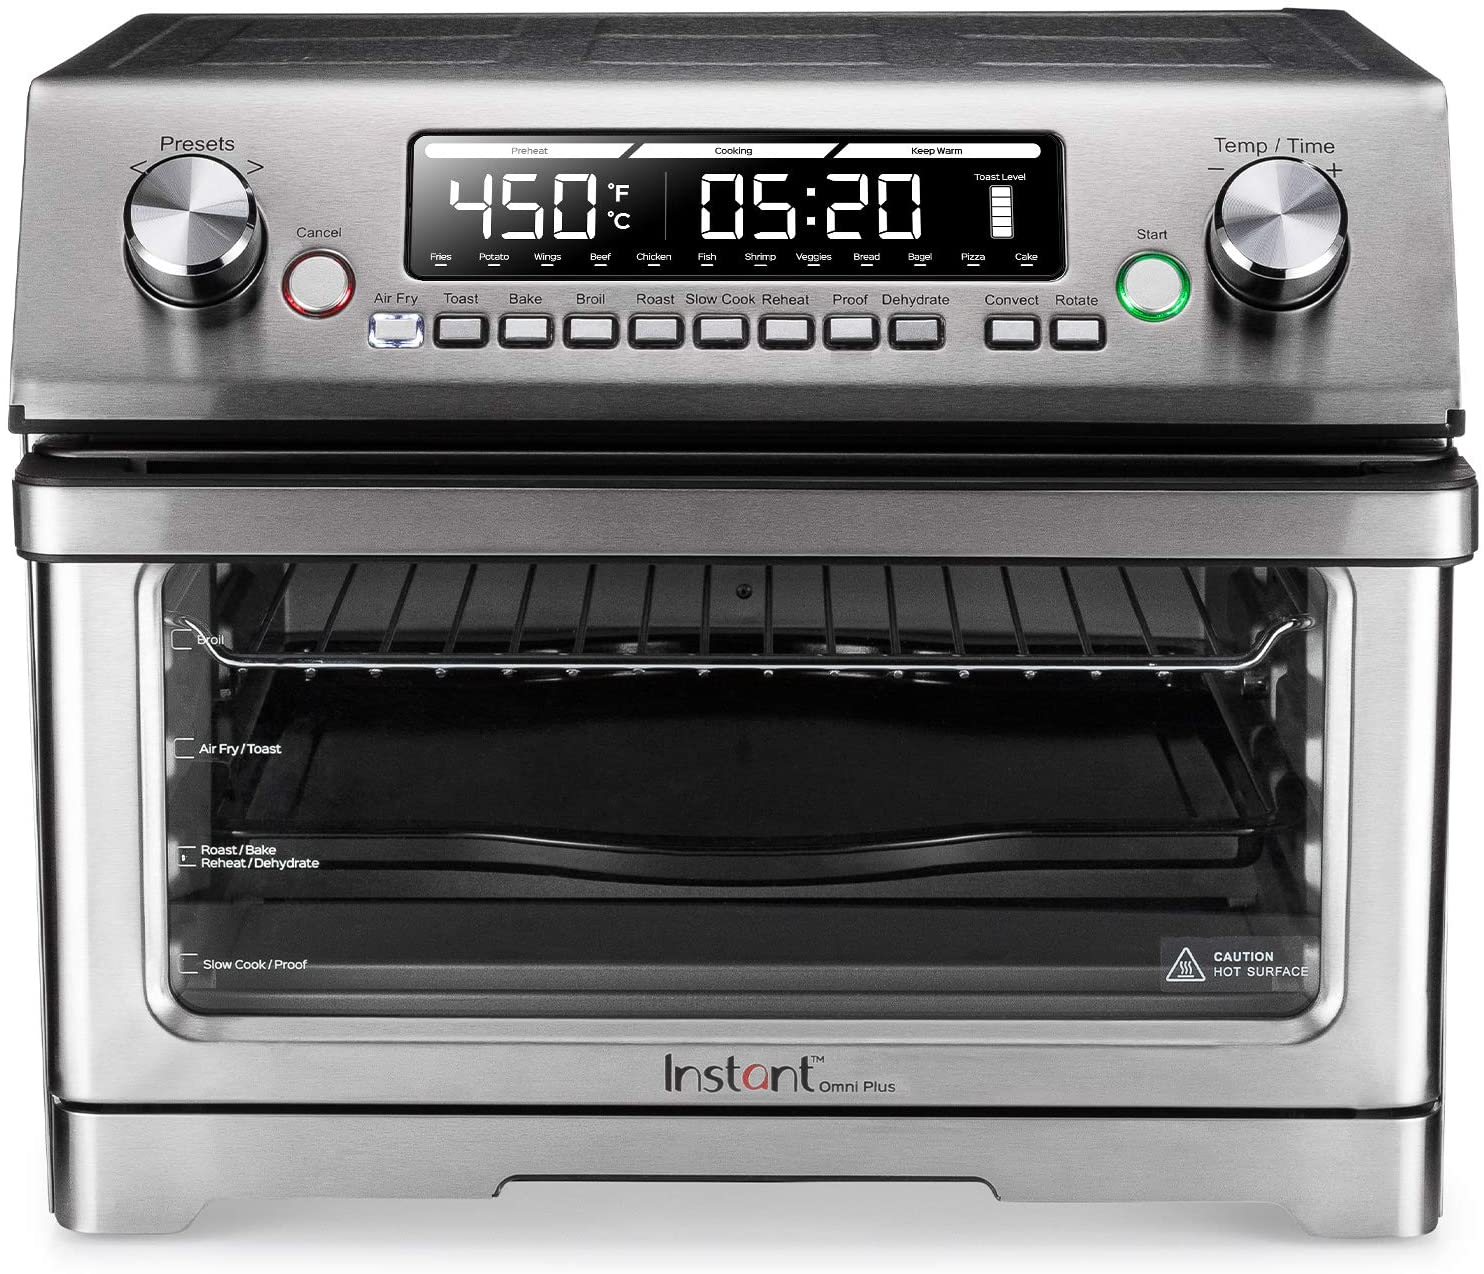 Best User-Friendly- Instant Pot plus Air Fryer Toaster Oven